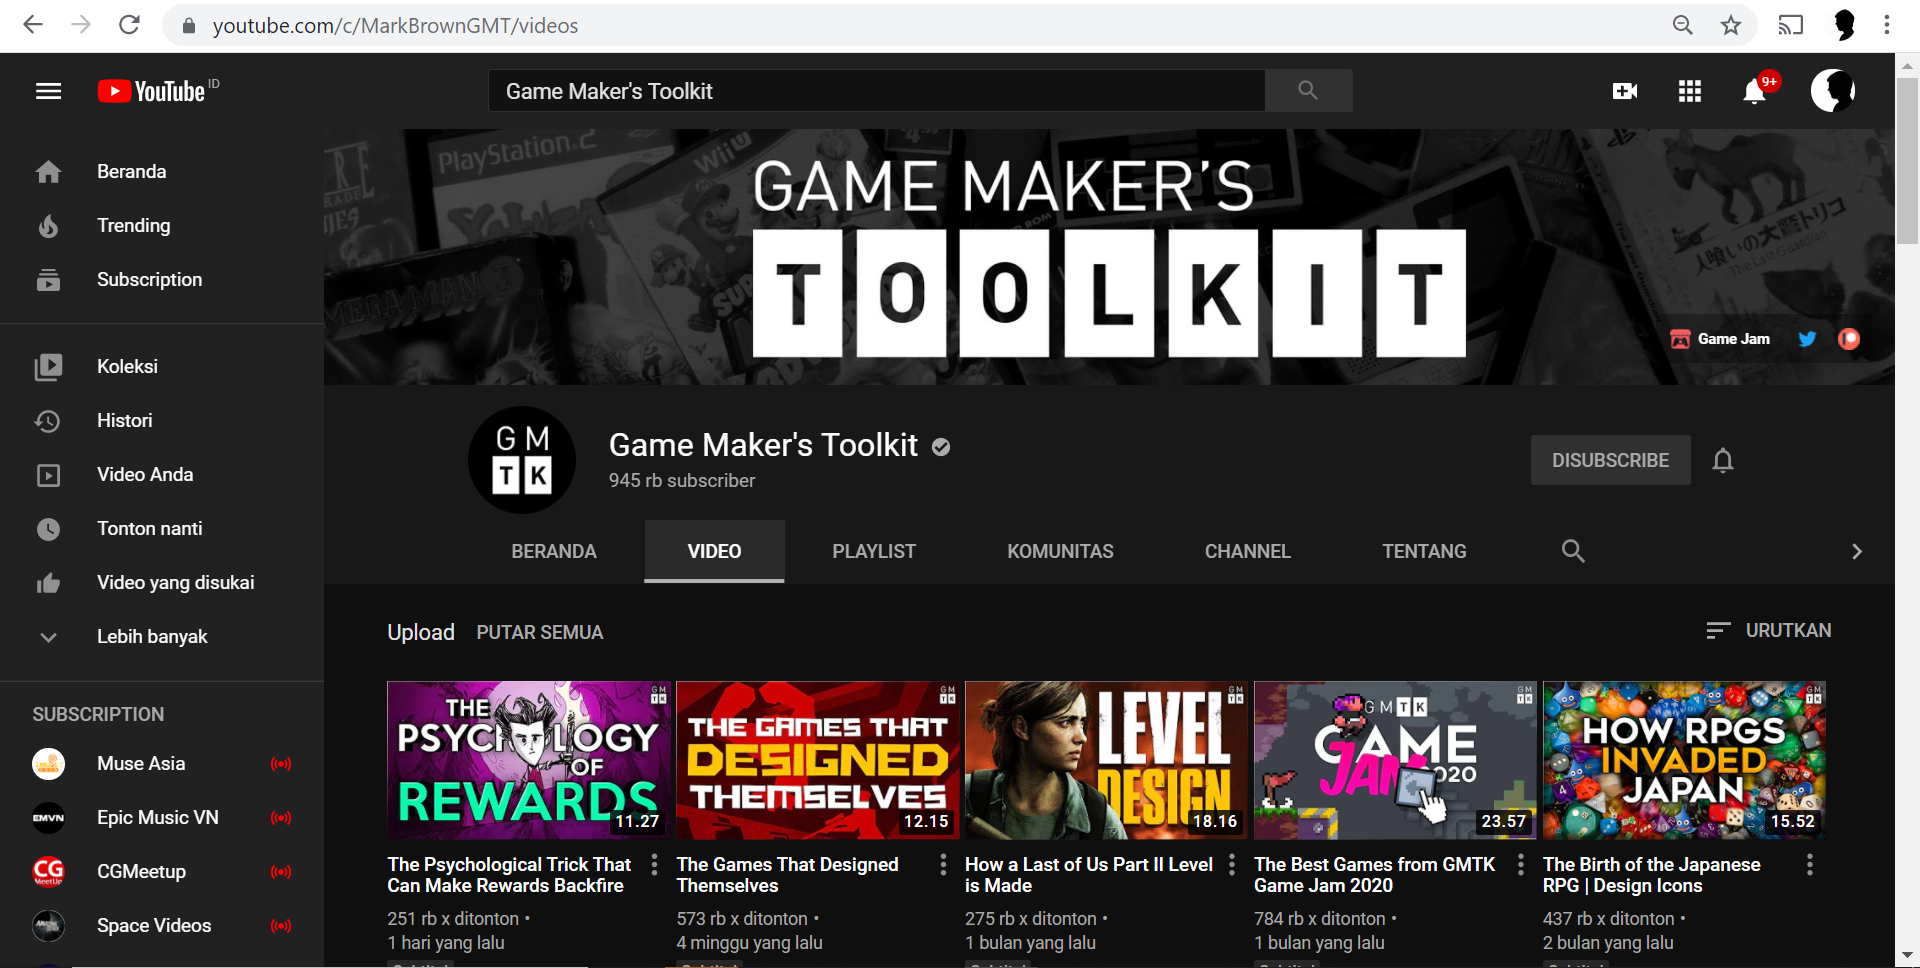 Game Maker's Toolkit